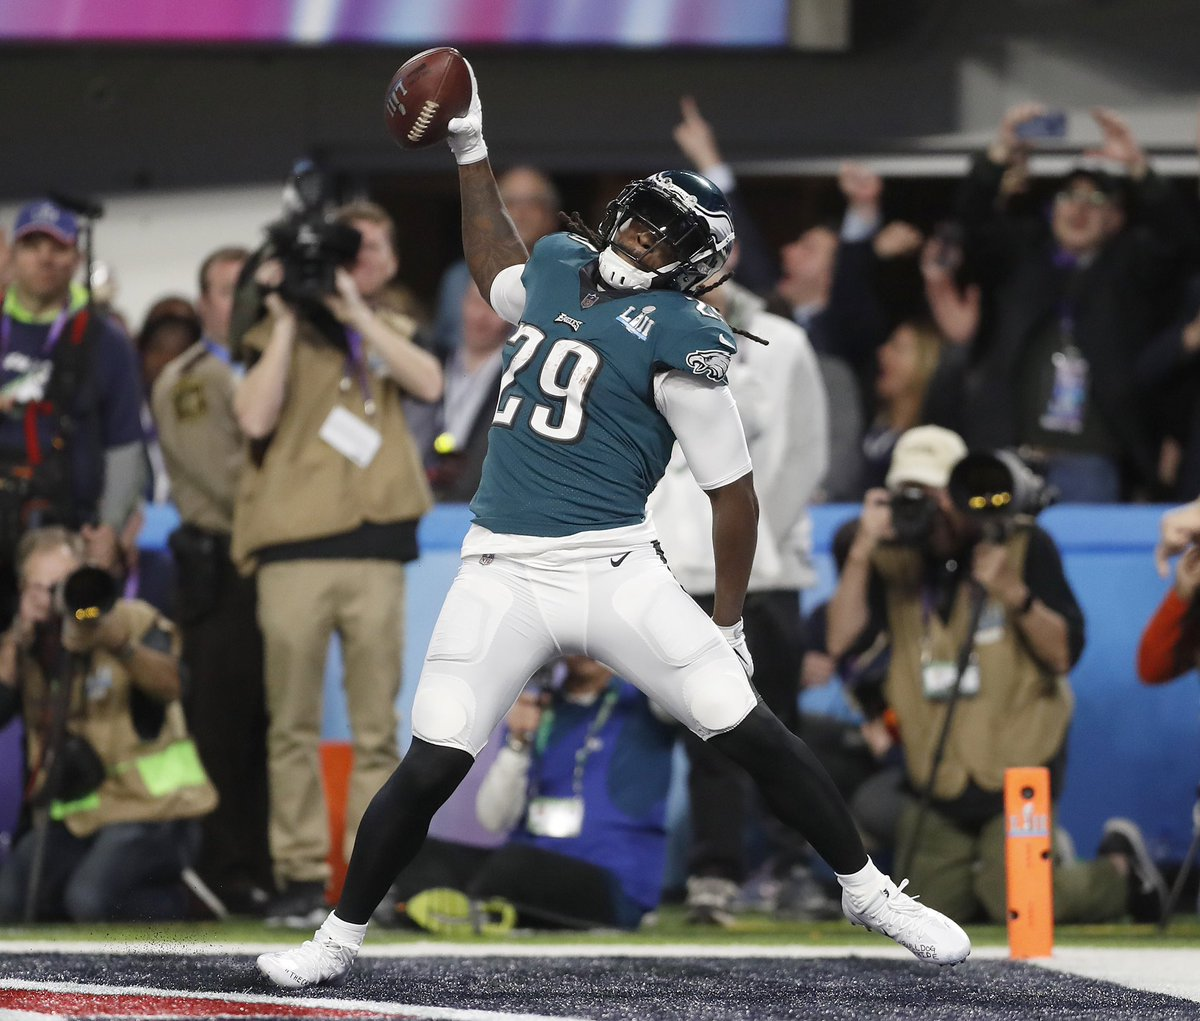 CONGRATS to LeGarrette Blount (@LG_Blount) on his retirement 👏  You'll always have a home in Philadelphia, LeGarettte!  In SB52, Blount led the #Eagles in rushing with 90YDS on 14CAR and 1TD. | #FlyEaglesFly